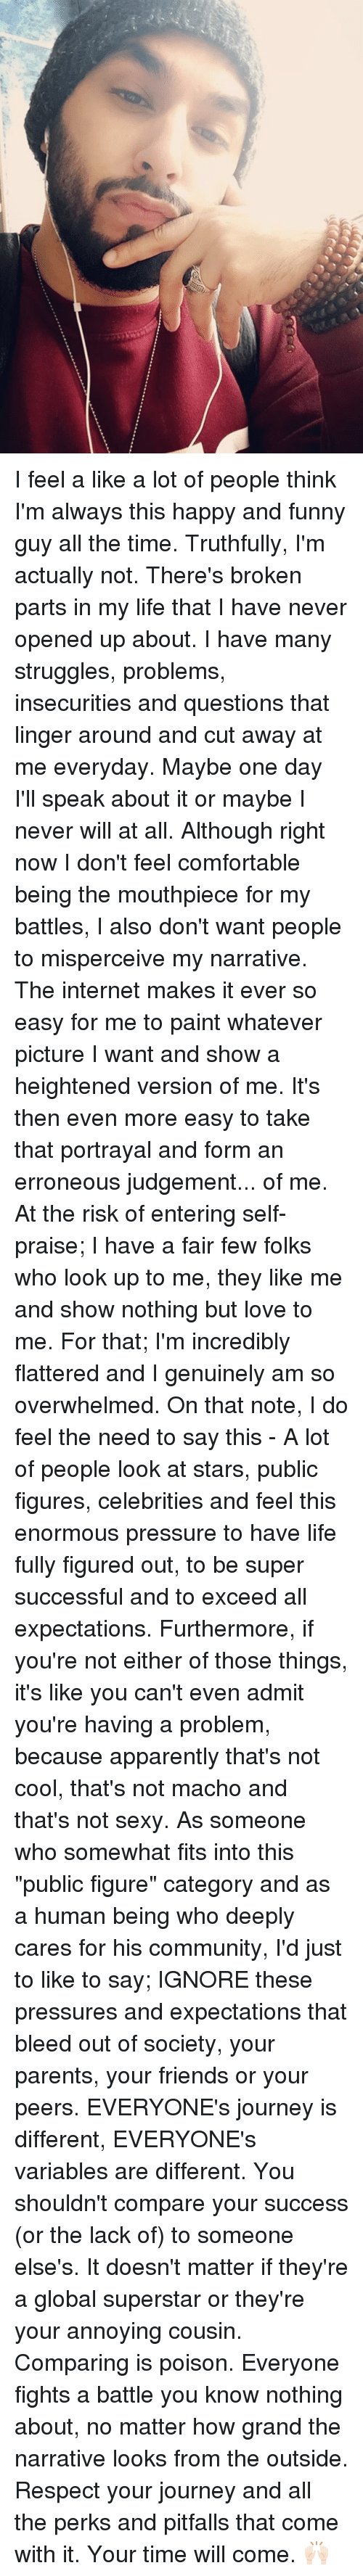 """Judgementality: I feel a like a lot of people think I'm always this happy and funny guy all the time. Truthfully, I'm actually not. There's broken parts in my life that I have never opened up about. I have many struggles, problems, insecurities and questions that linger around and cut away at me everyday. Maybe one day I'll speak about it or maybe I never will at all. Although right now I don't feel comfortable being the mouthpiece for my battles, I also don't want people to misperceive my narrative. The internet makes it ever so easy for me to paint whatever picture I want and show a heightened version of me. It's then even more easy to take that portrayal and form an erroneous judgement... of me. At the risk of entering self-praise; I have a fair few folks who look up to me, they like me and show nothing but love to me. For that; I'm incredibly flattered and I genuinely am so overwhelmed. On that note, I do feel the need to say this - A lot of people look at stars, public figures, celebrities and feel this enormous pressure to have life fully figured out, to be super successful and to exceed all expectations. Furthermore, if you're not either of those things, it's like you can't even admit you're having a problem, because apparently that's not cool, that's not macho and that's not sexy. As someone who somewhat fits into this """"public figure"""" category and as a human being who deeply cares for his community, I'd just to like to say; IGNORE these pressures and expectations that bleed out of society, your parents, your friends or your peers. EVERYONE's journey is different, EVERYONE's variables are different. You shouldn't compare your success (or the lack of) to someone else's. It doesn't matter if they're a global superstar or they're your annoying cousin. Comparing is poison. Everyone fights a battle you know nothing about, no matter how grand the narrative looks from the outside. Respect your journey and all the perks and pitfalls that come with it. Your time will """